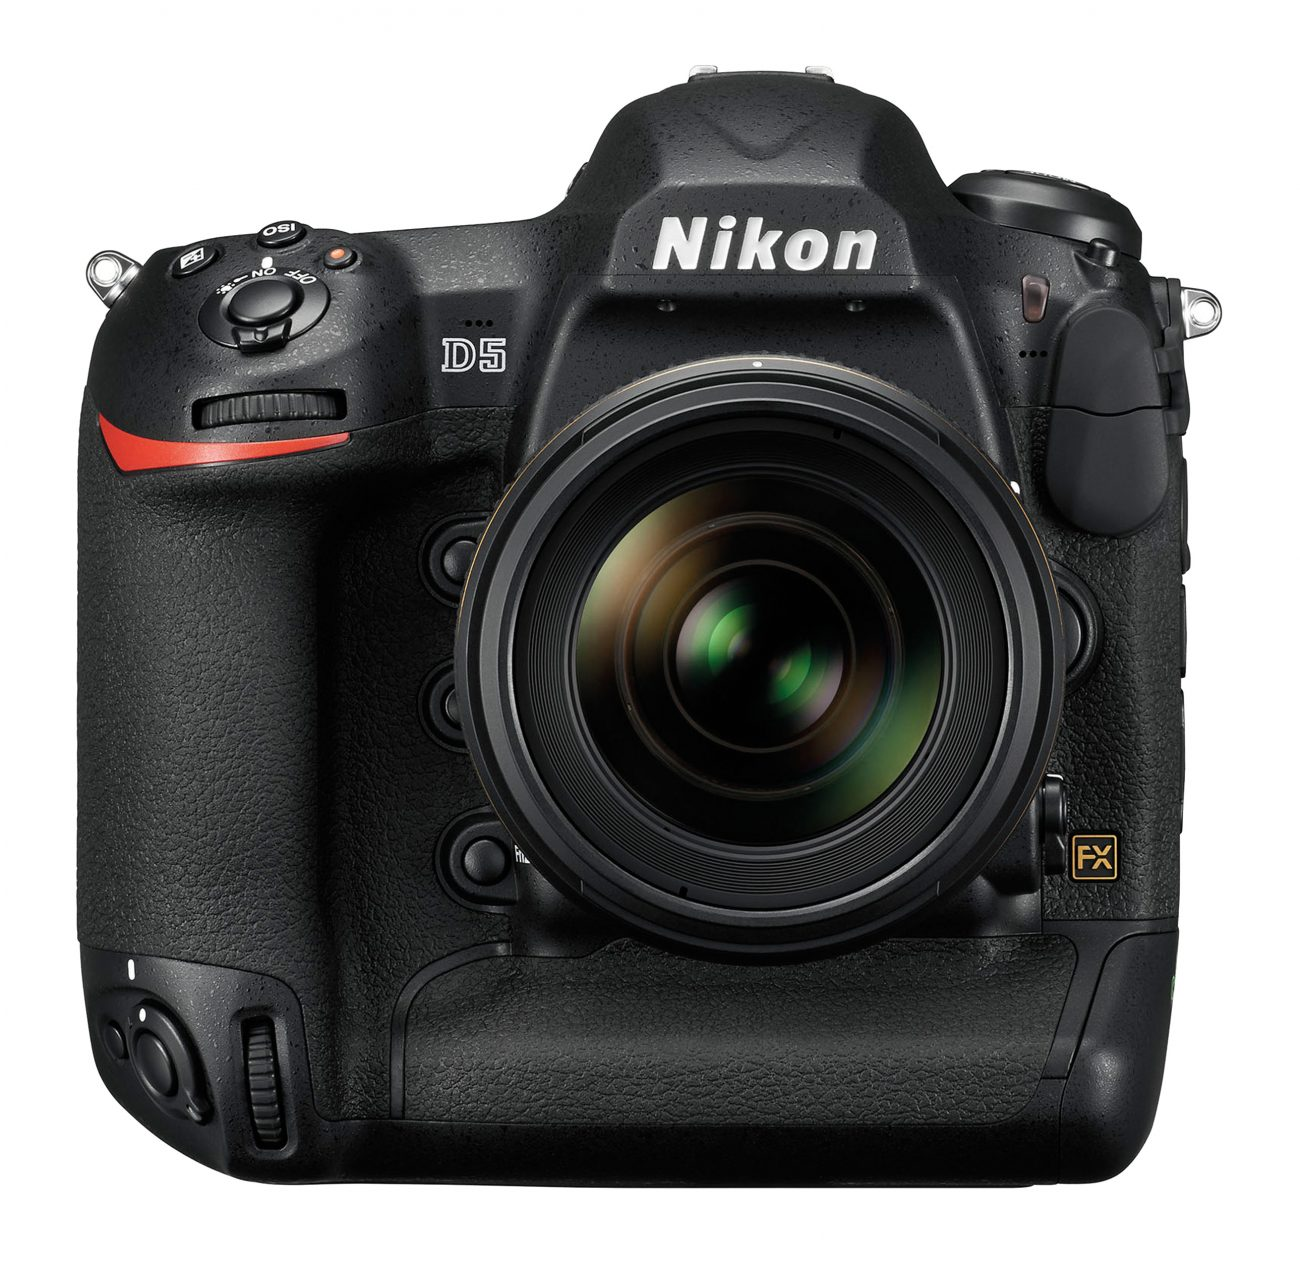 Nikon D5 | New Zealand Geographic